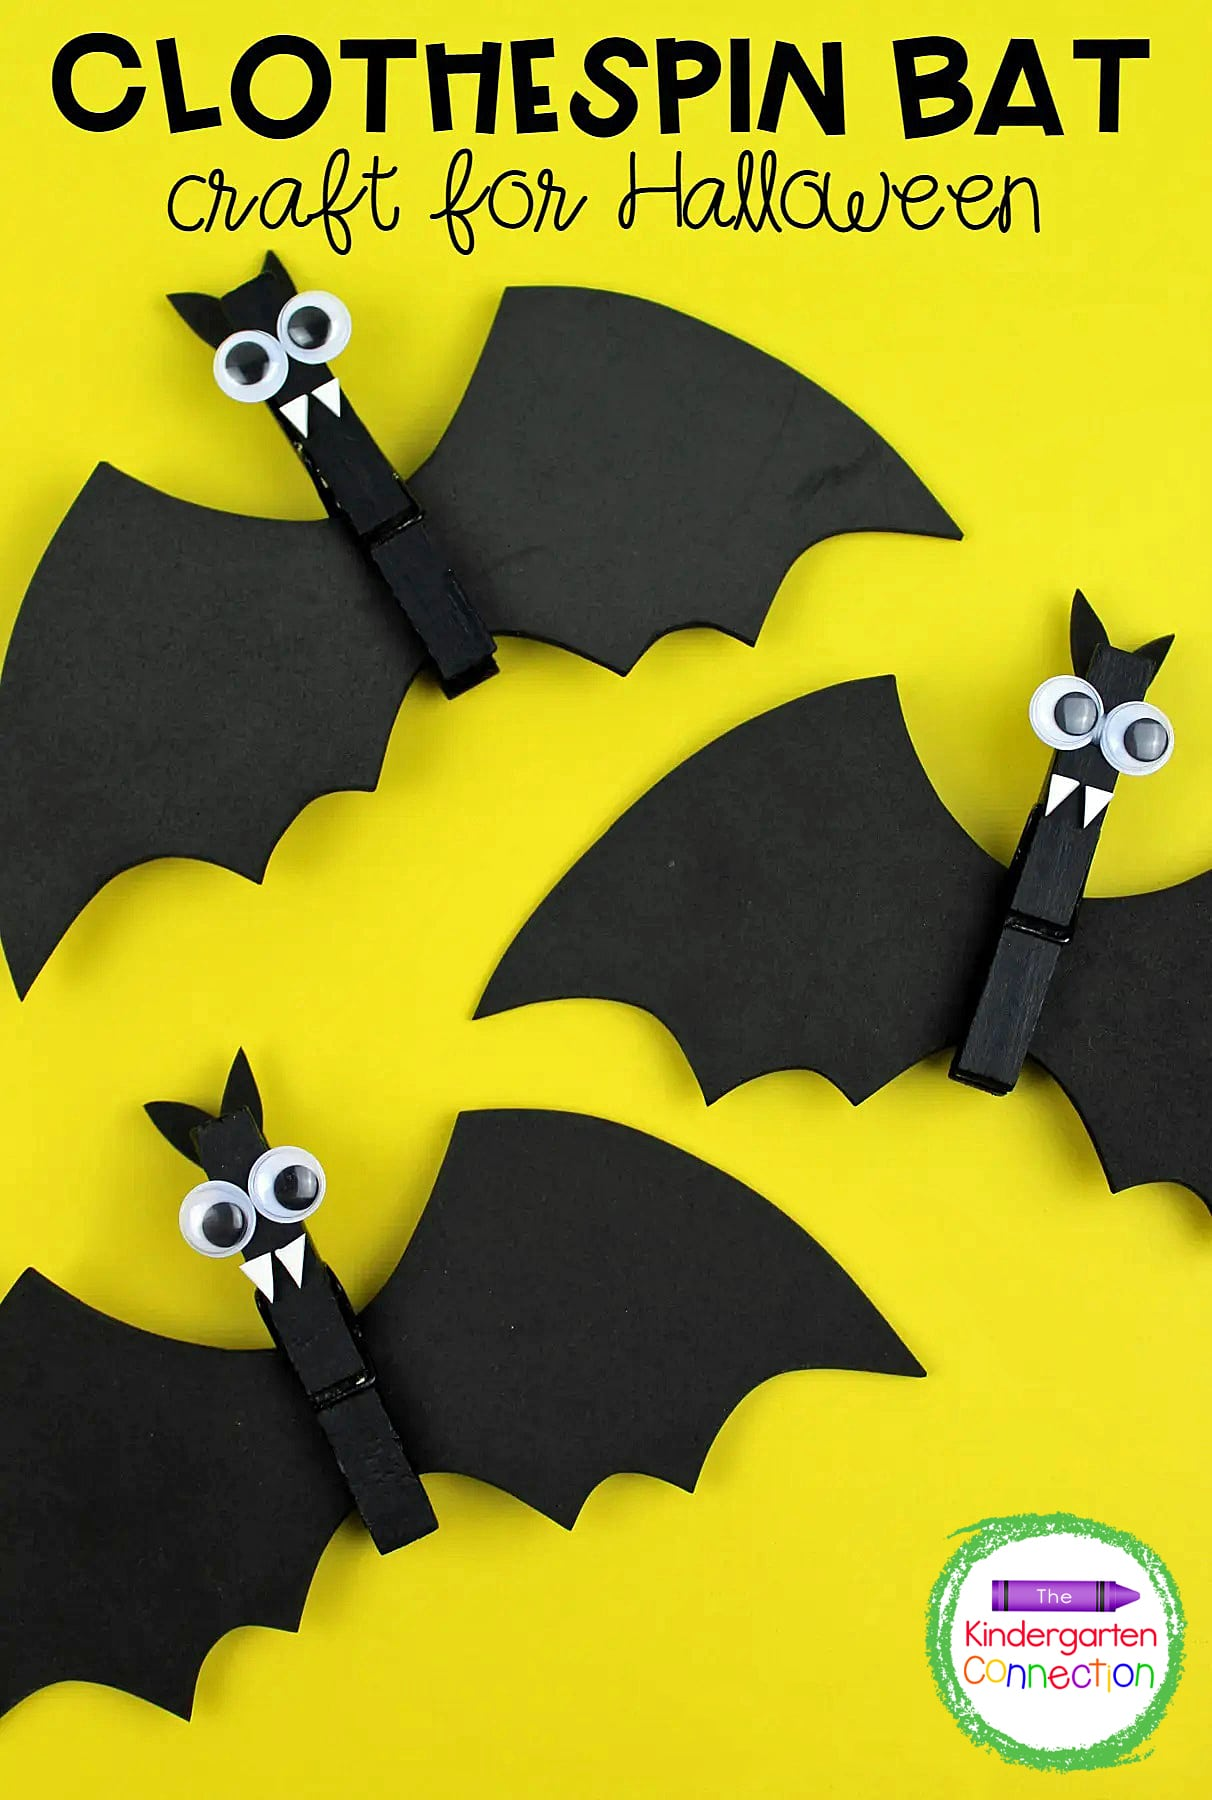 This cute clothespin bat craft is a great Halloween project for kids. Add a magnet to the back and kids can take it home to display proudly!